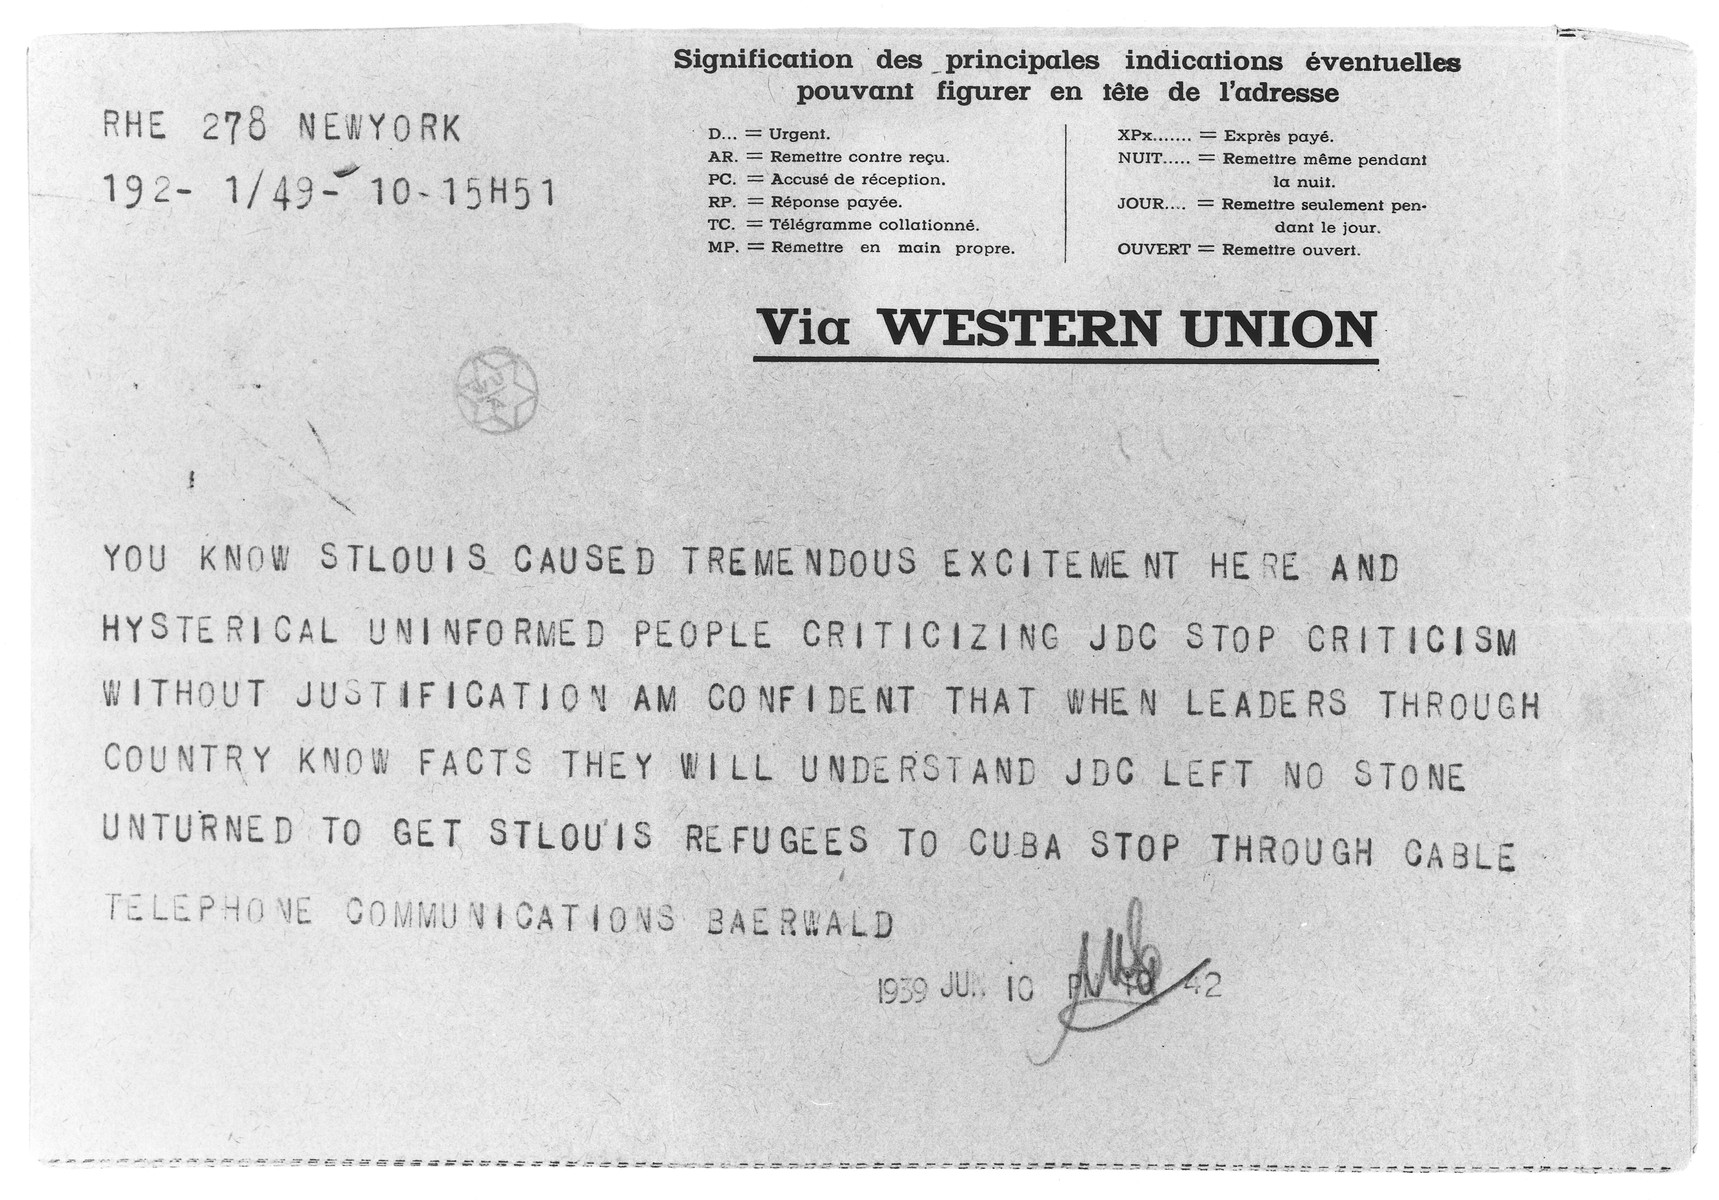 Telegram sent to Morris Troper, JDC European Director in Paris from Paul Baerwald, JDC Chairman in New York, commenting on the enormous public interest in the fate of the MS St. Louis refugees and bemoaning the criticism leveled at the JDC for not doing enough.